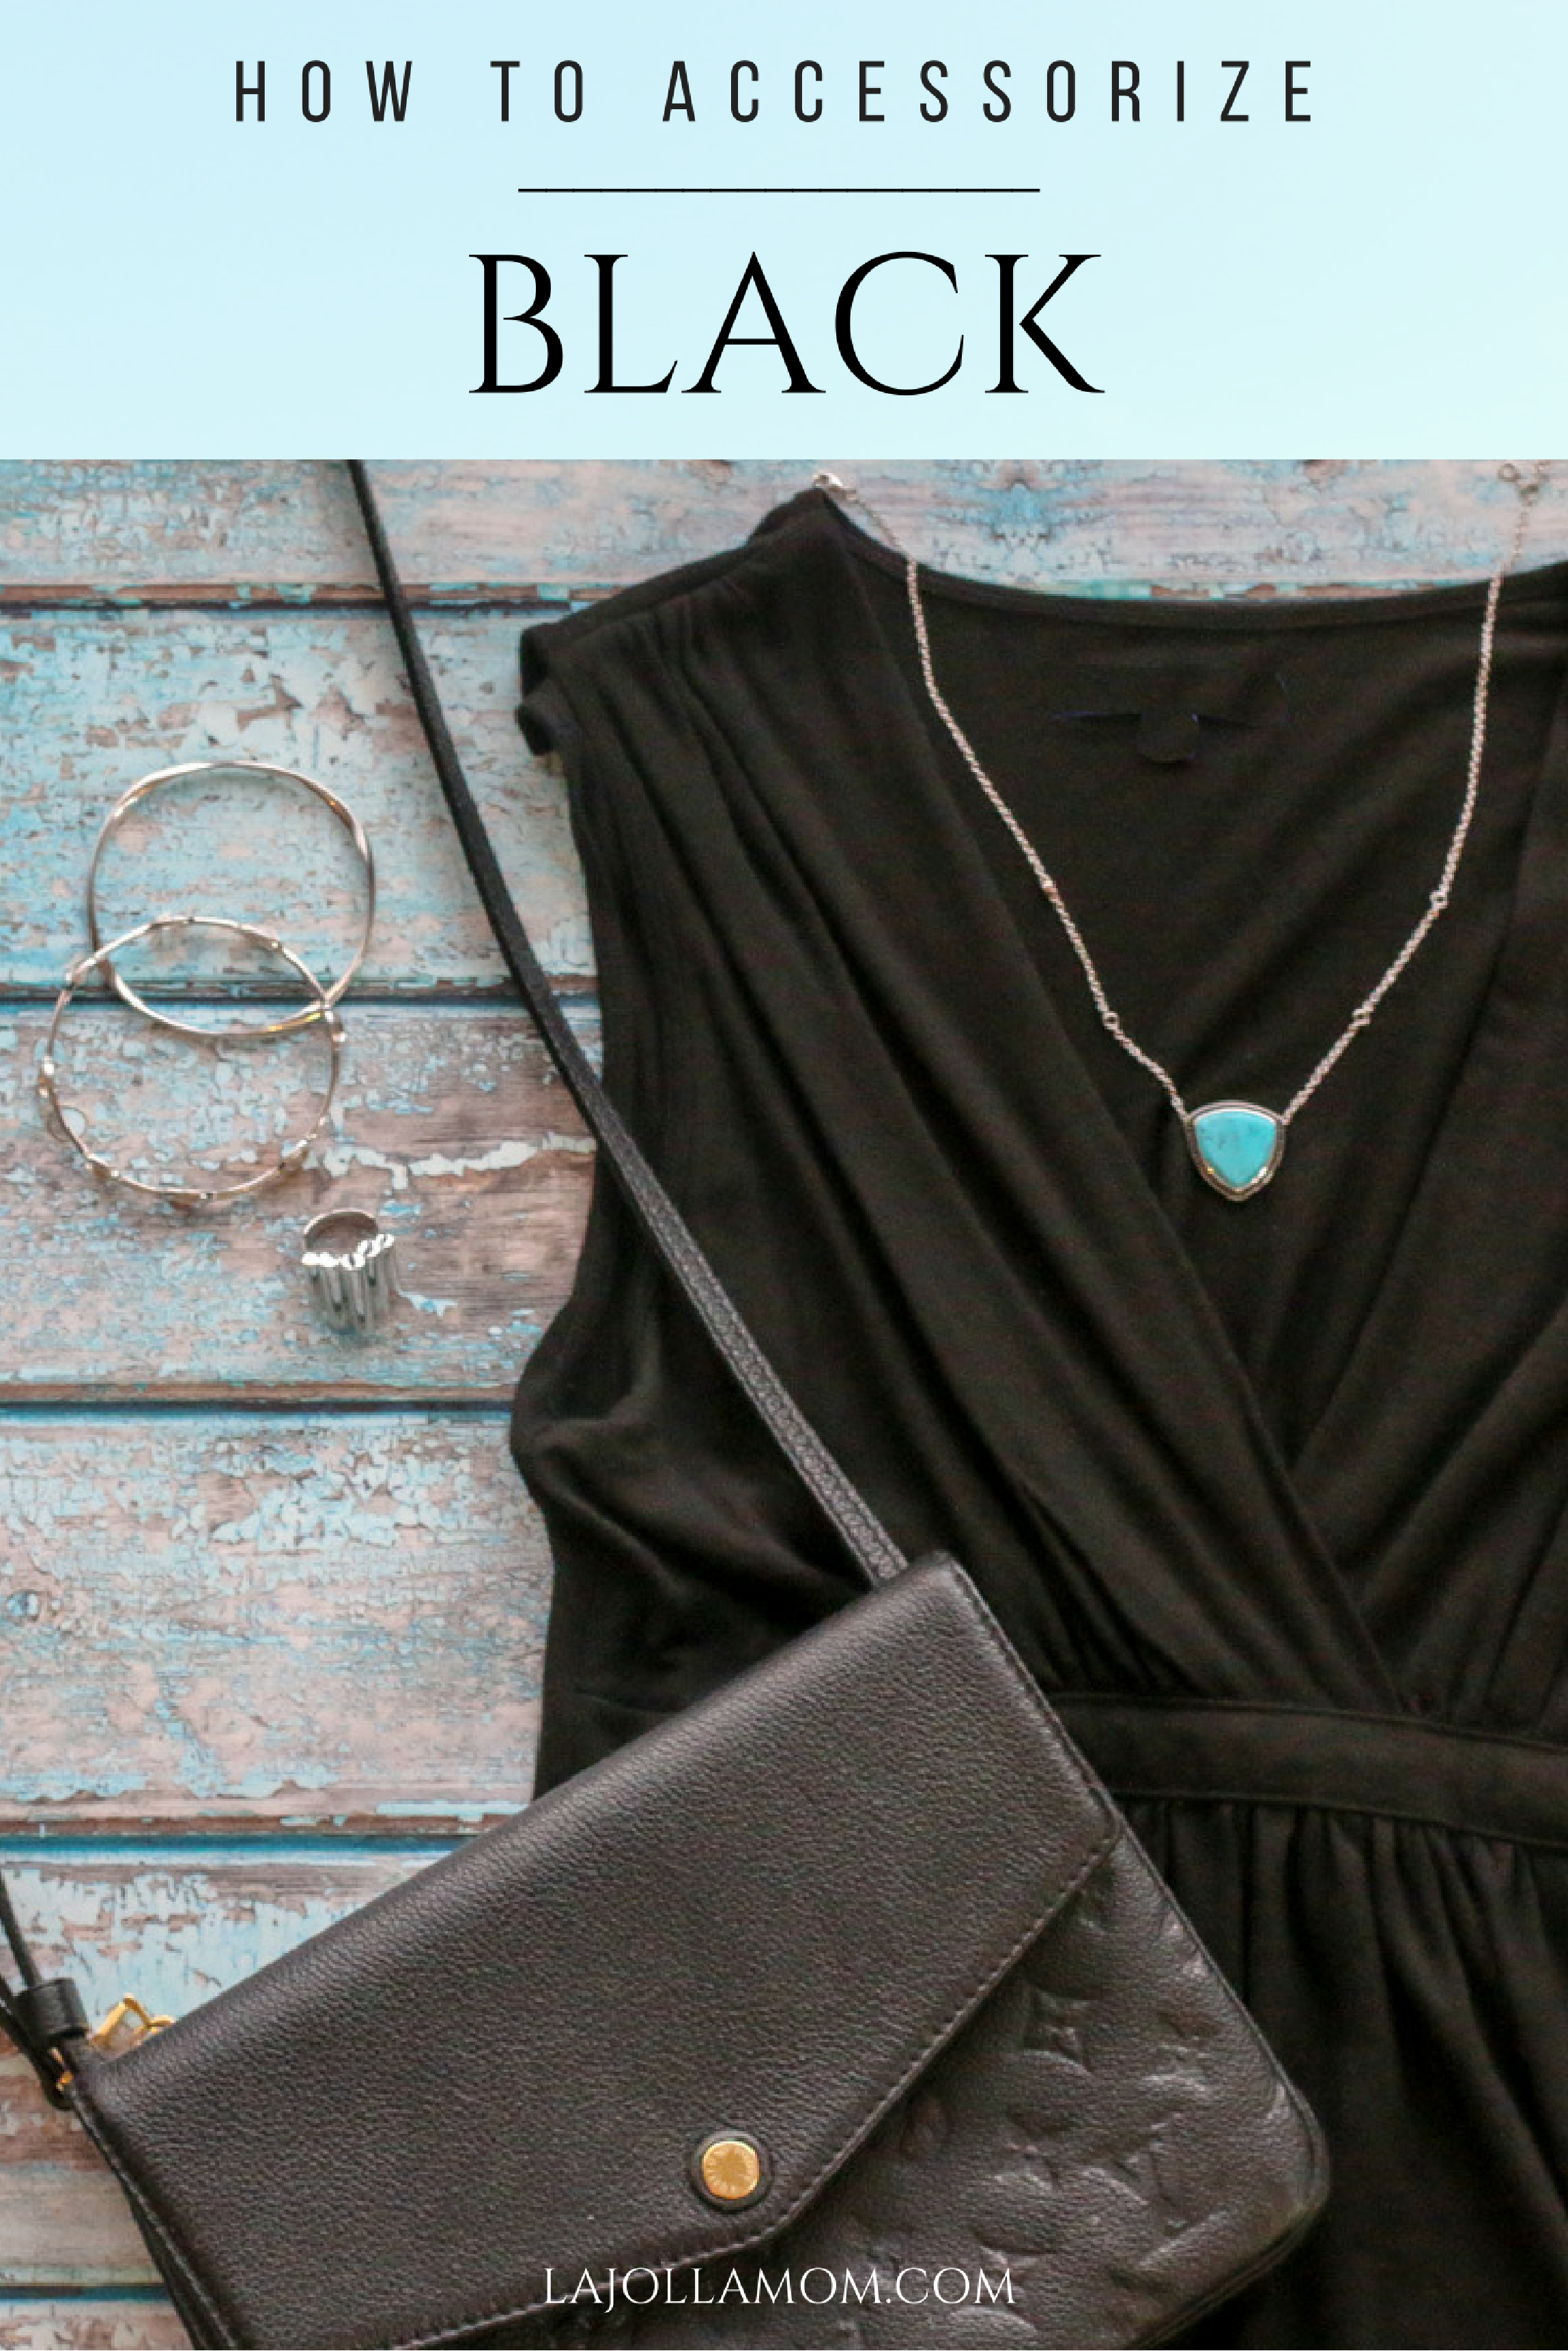 See how easy it is to accessorize black with travel inspired jewelry with real metal and gemstones from Lisa Bridge Collection.